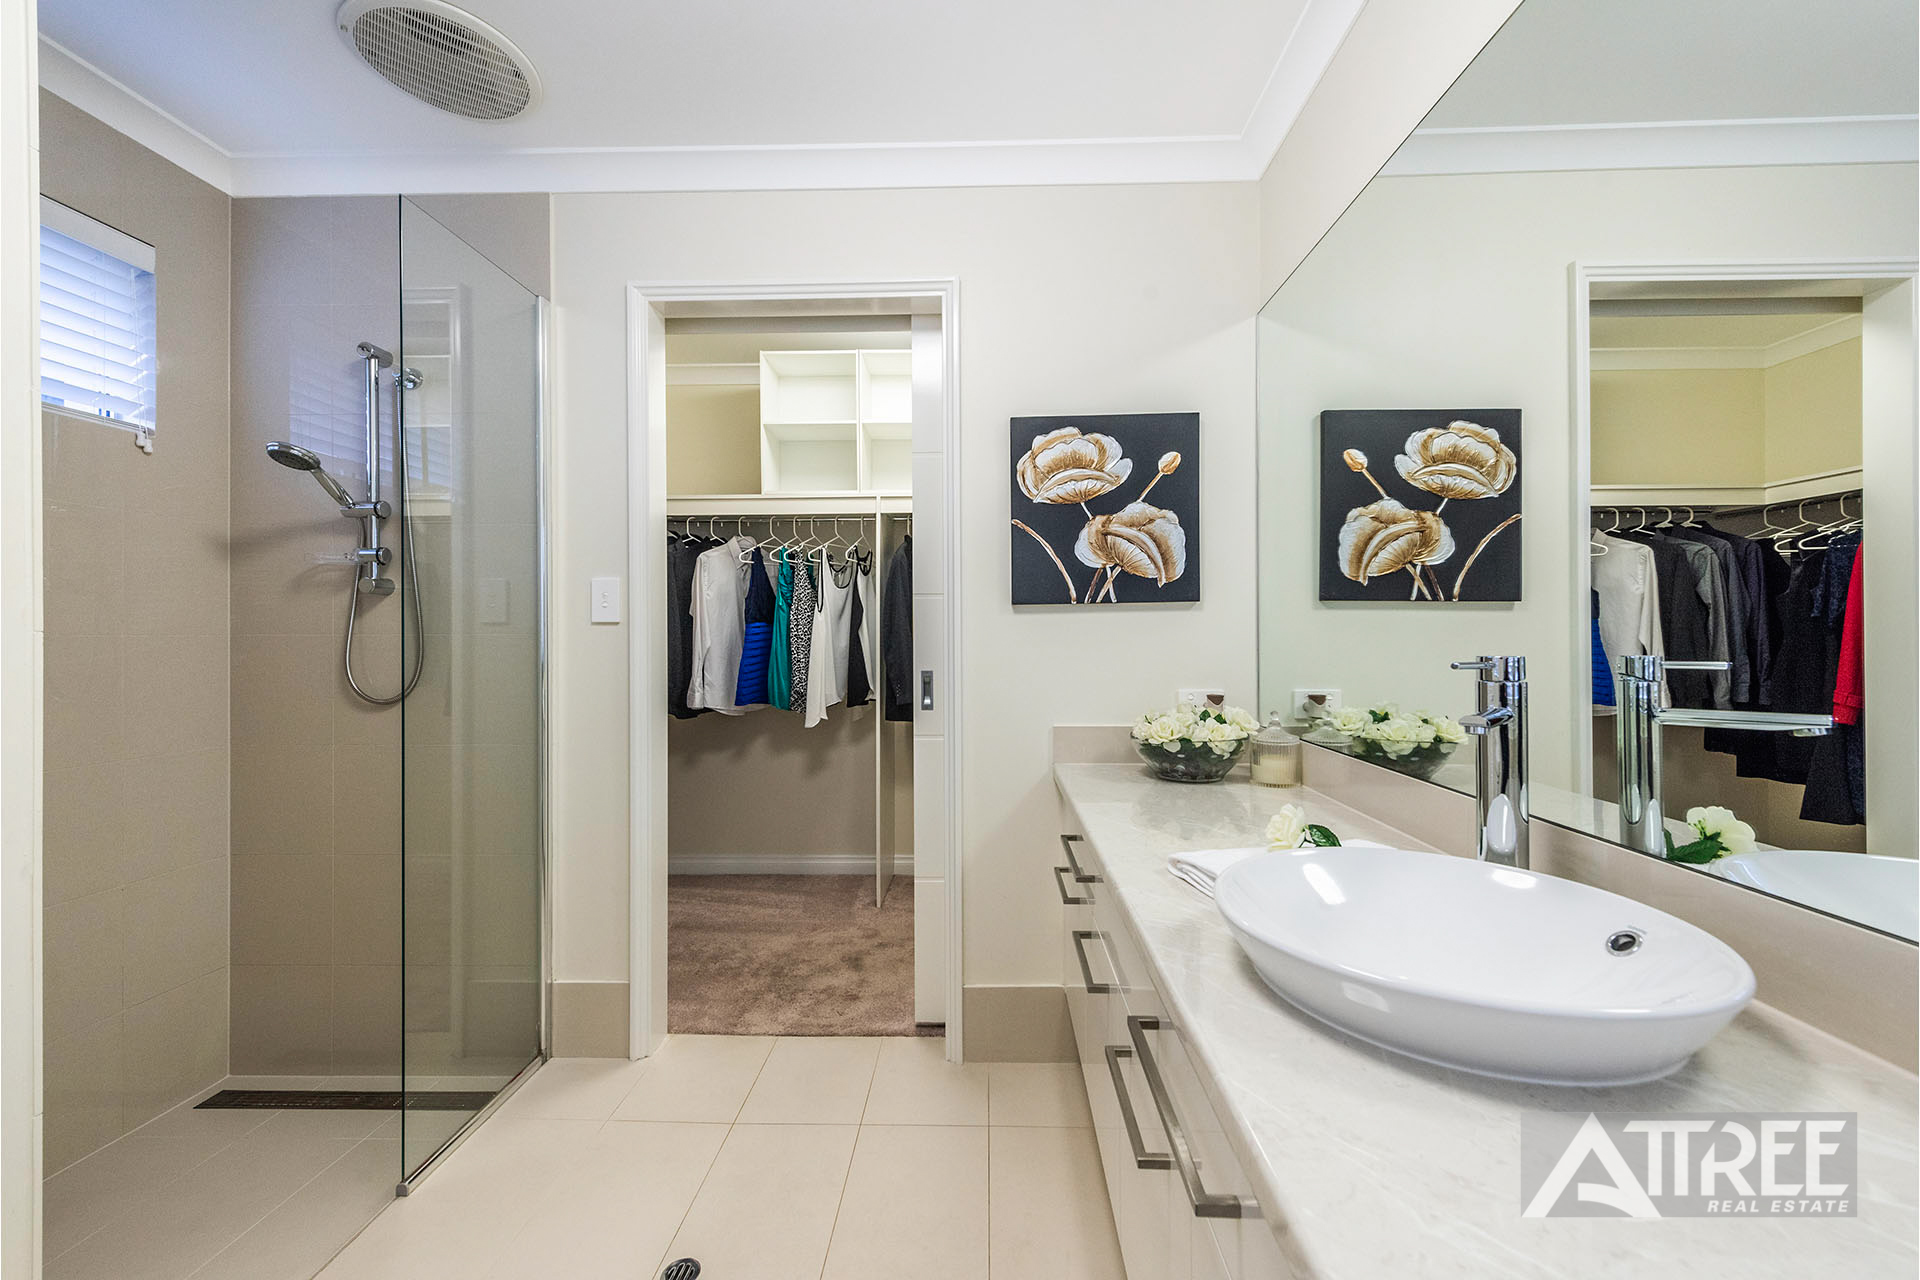 Property for sale in HARRISDALE, 4 Meka Way : Attree Real Estate